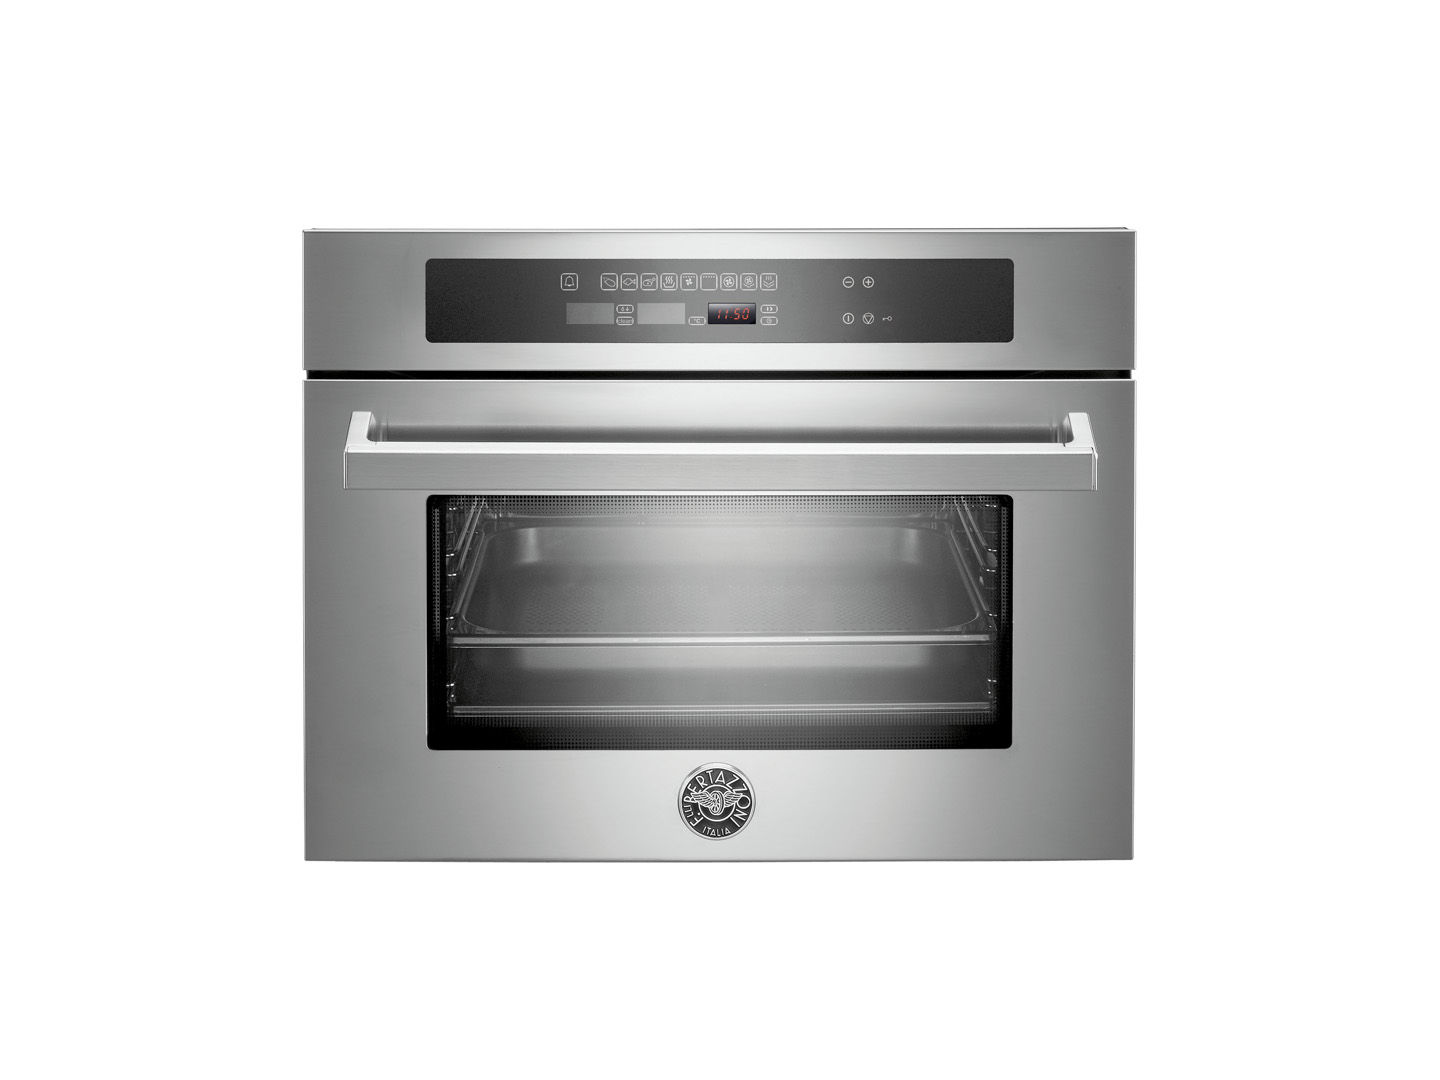 45 Combi Steam Oven | Bertazzoni - Stainless